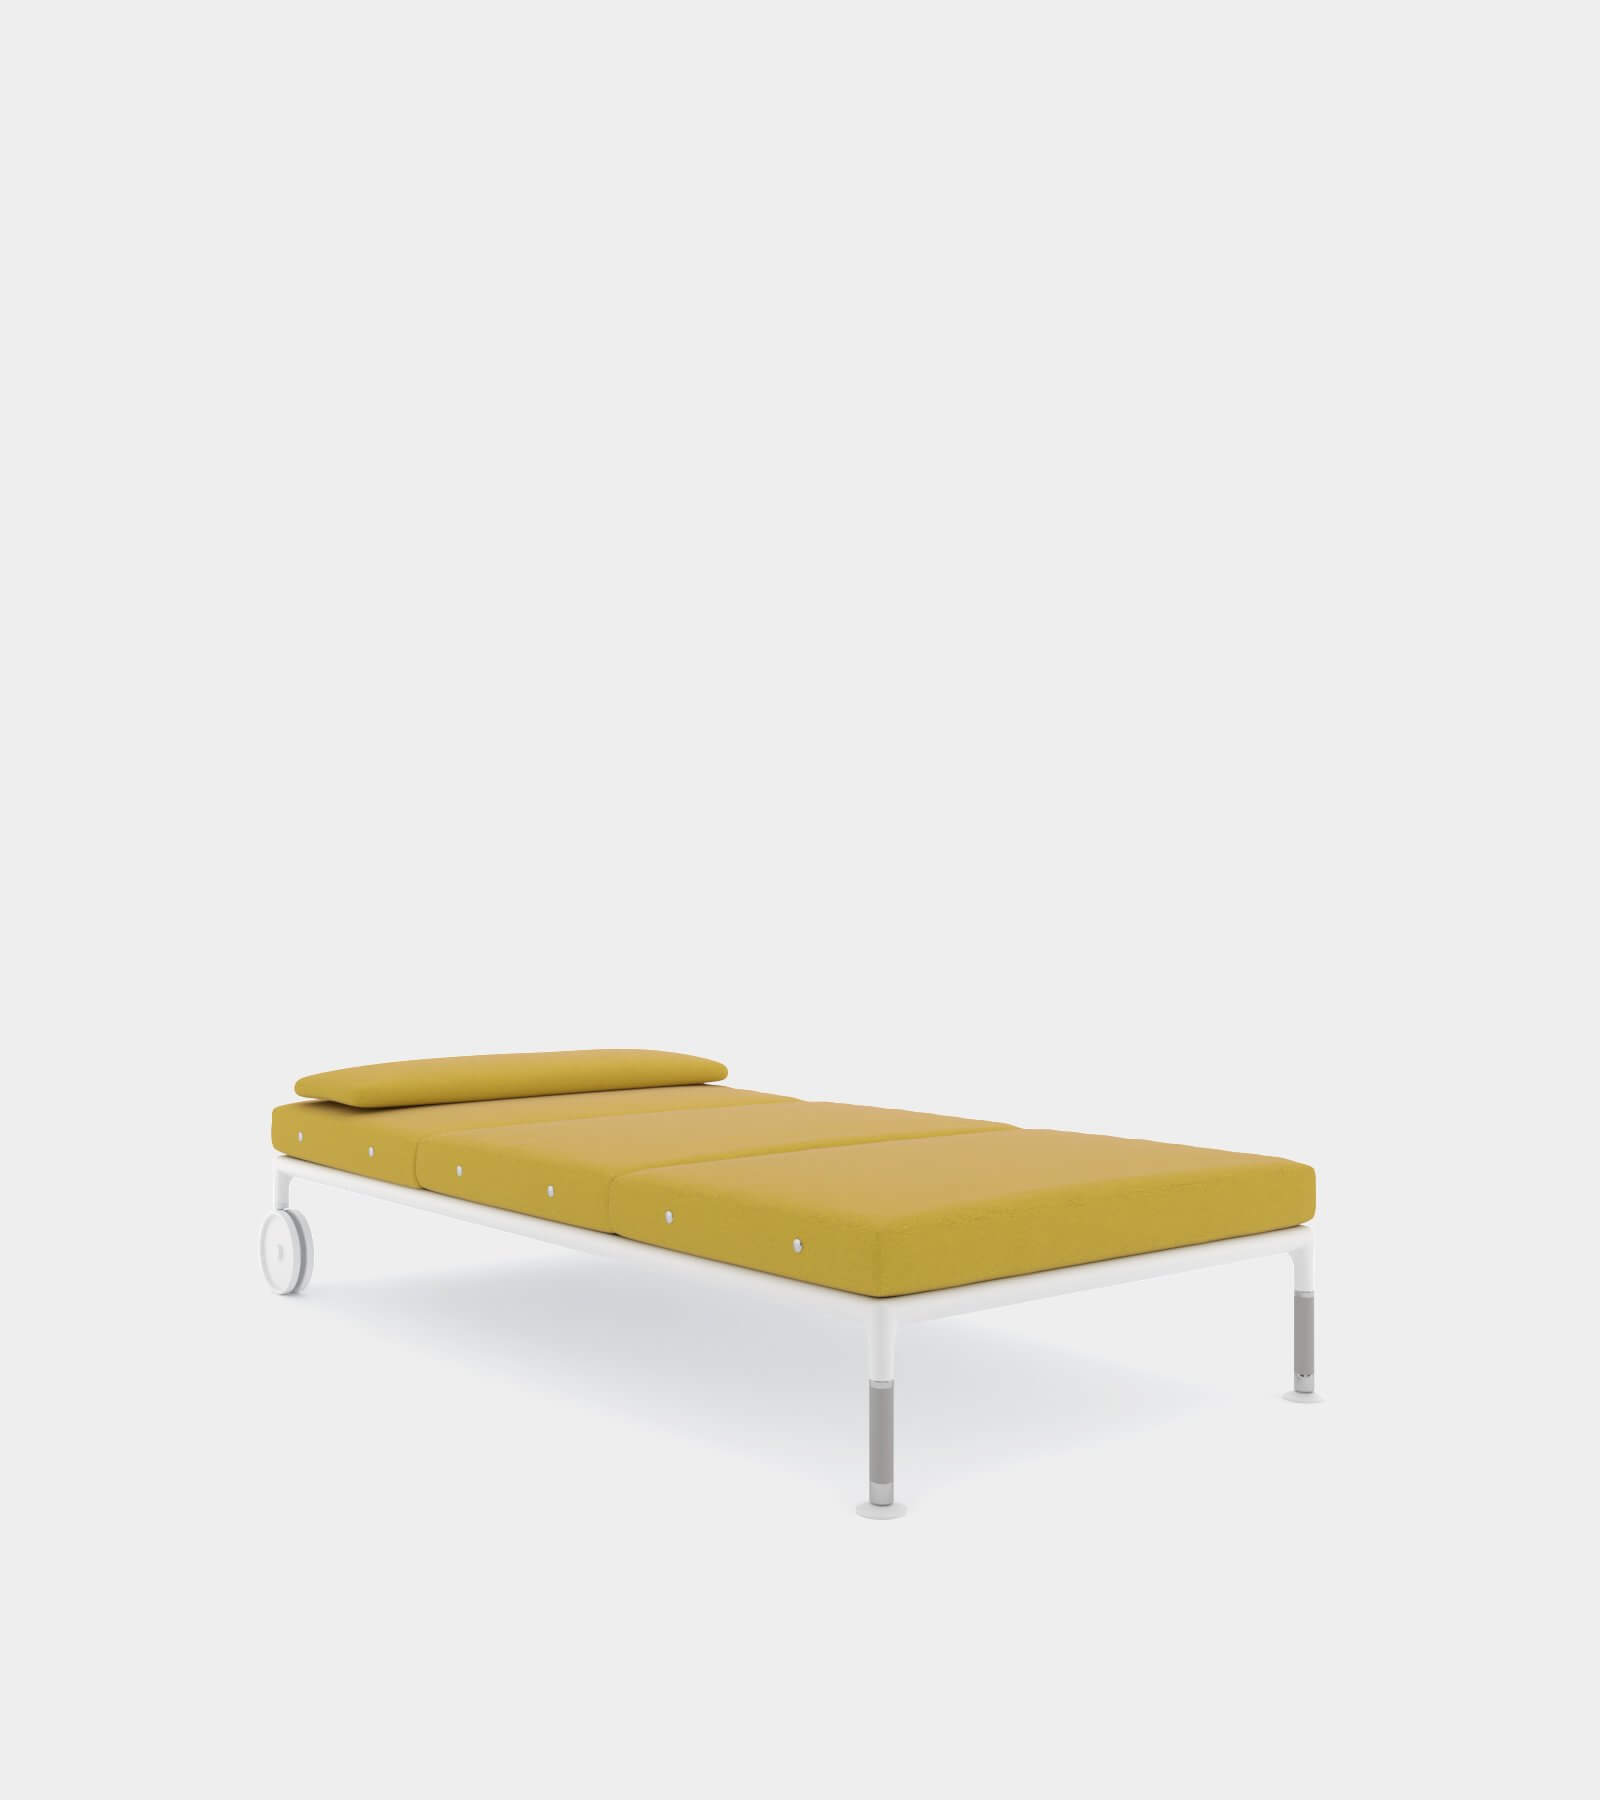 Outdoor chaise longue with wheels 2 - 3D Model